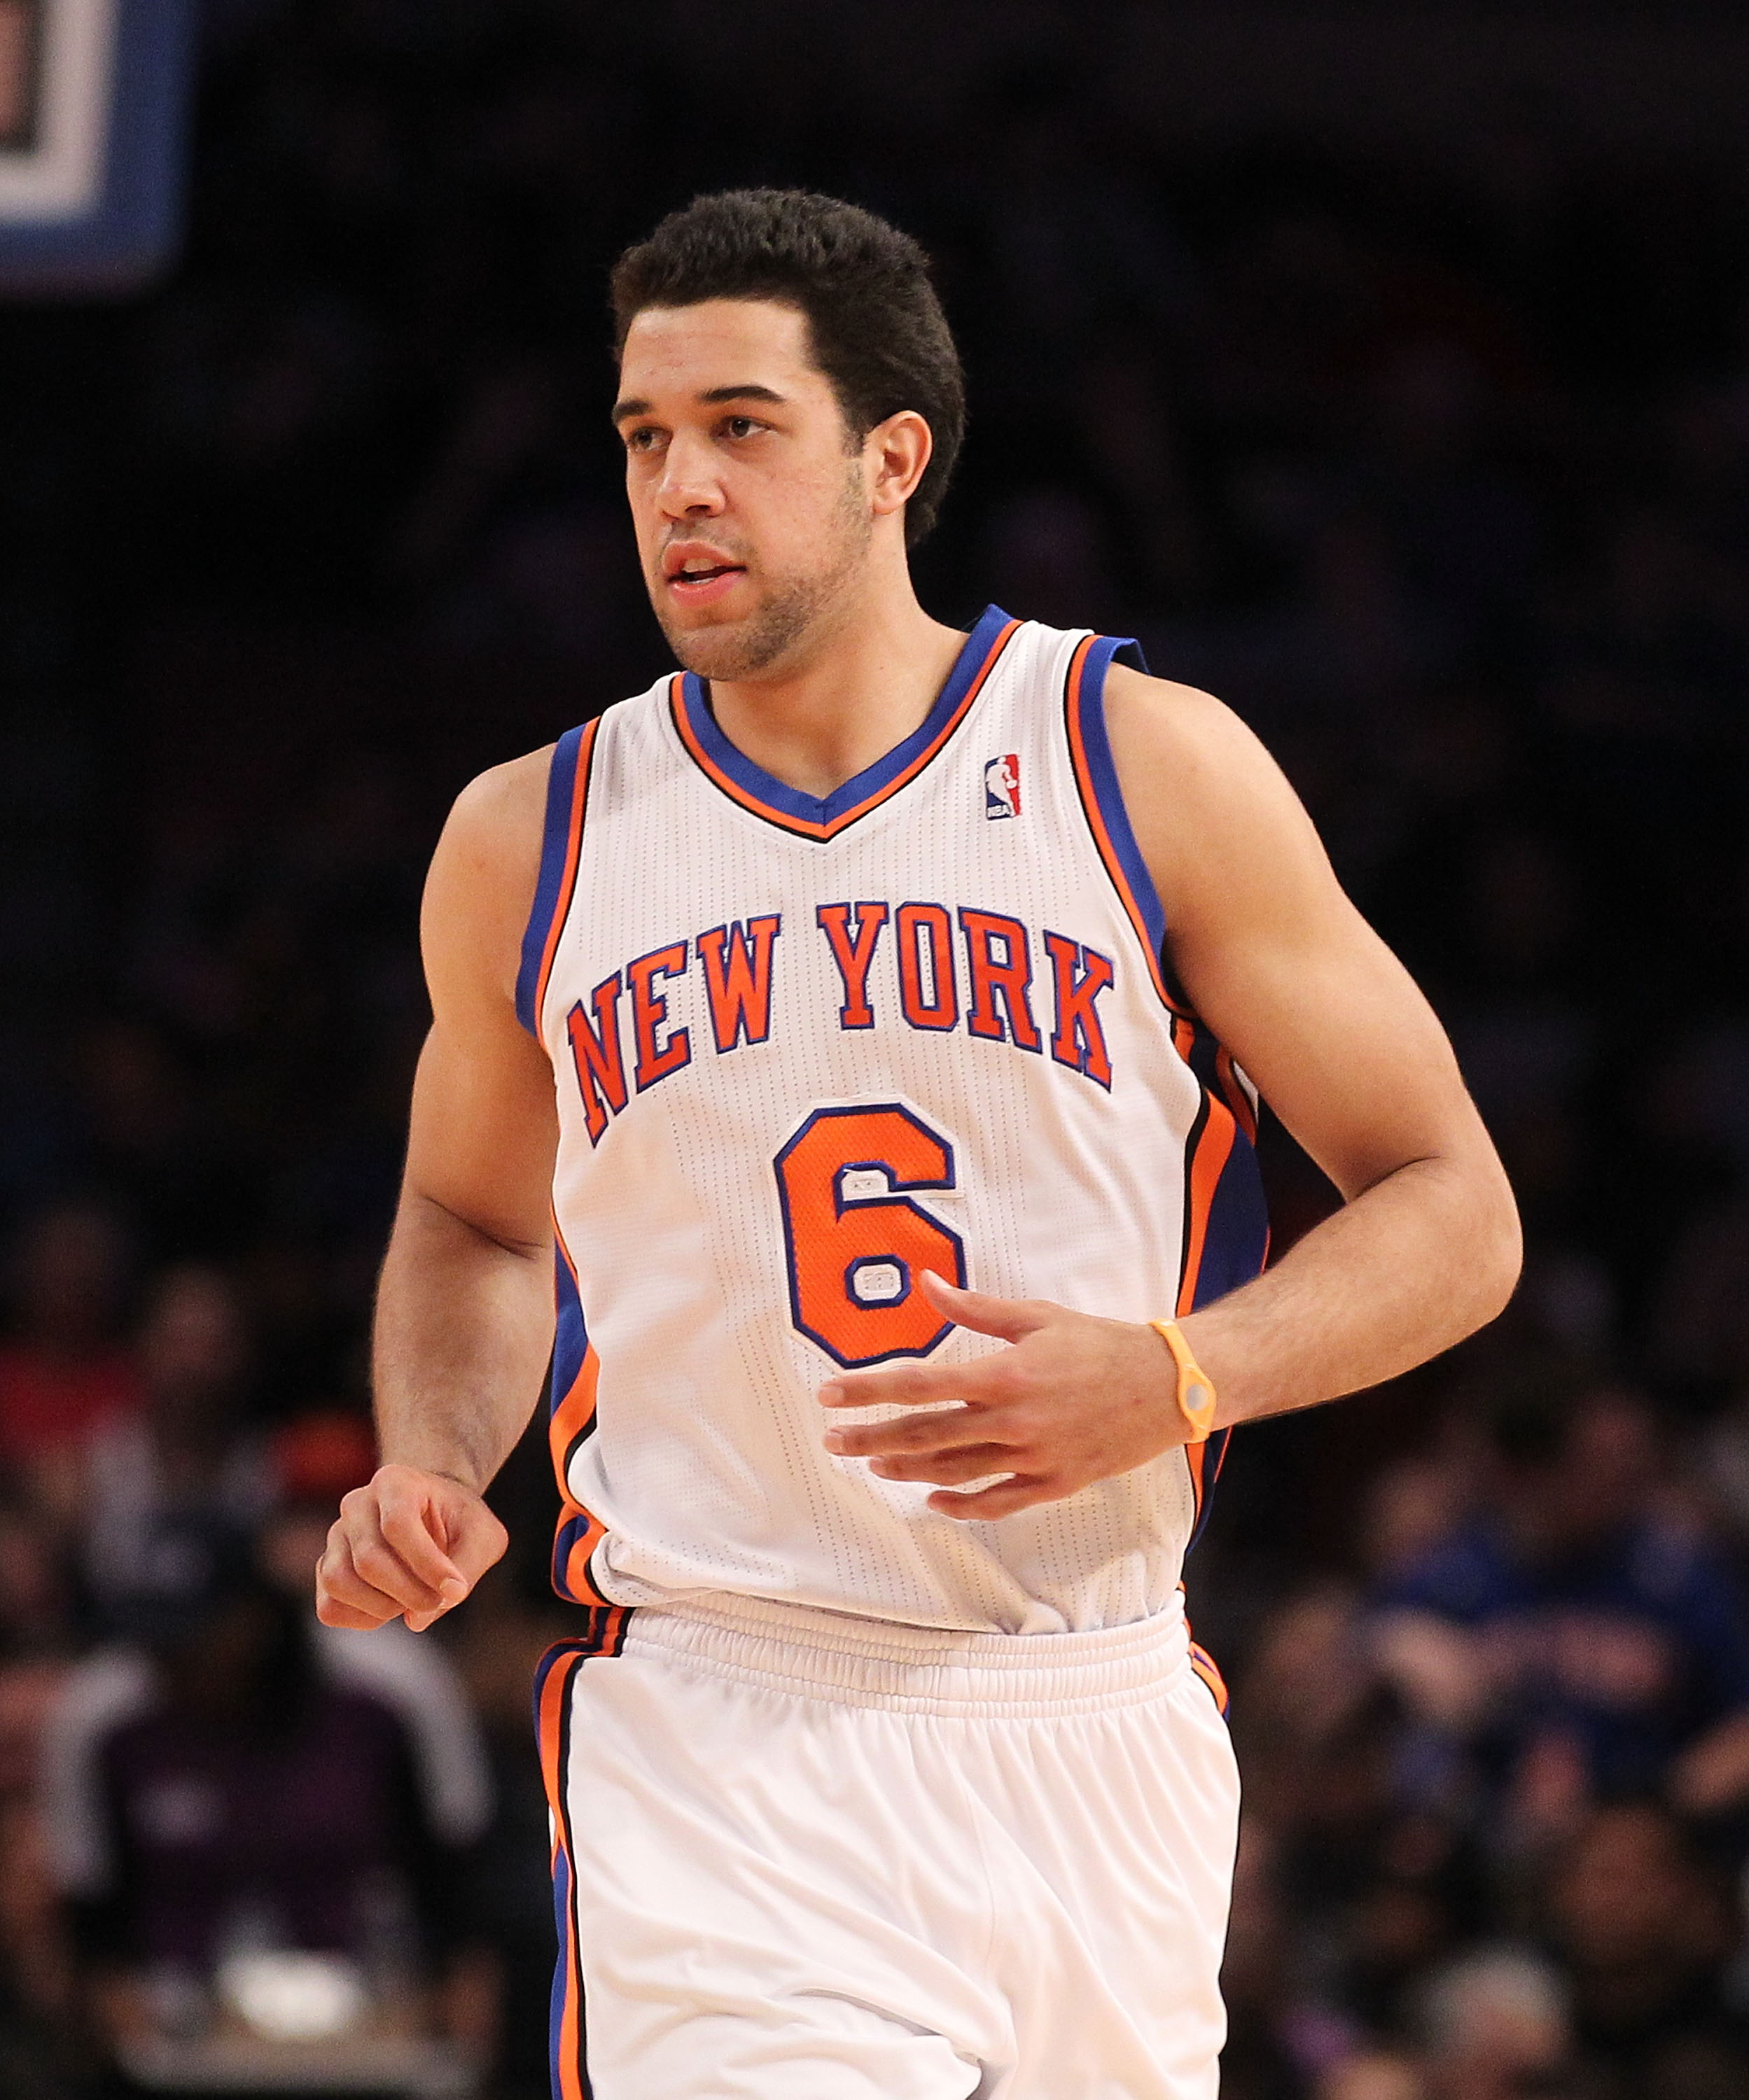 NEW YORK - DECEMBER 22:  Landry Fields #6 of the New York Knicks in action against the Oklahoma City Thunder at Madison Square Garden on December 22, 2010 in New York, New York.   NOTE TO USER: User expressly acknowledges and agrees that, by downloading a